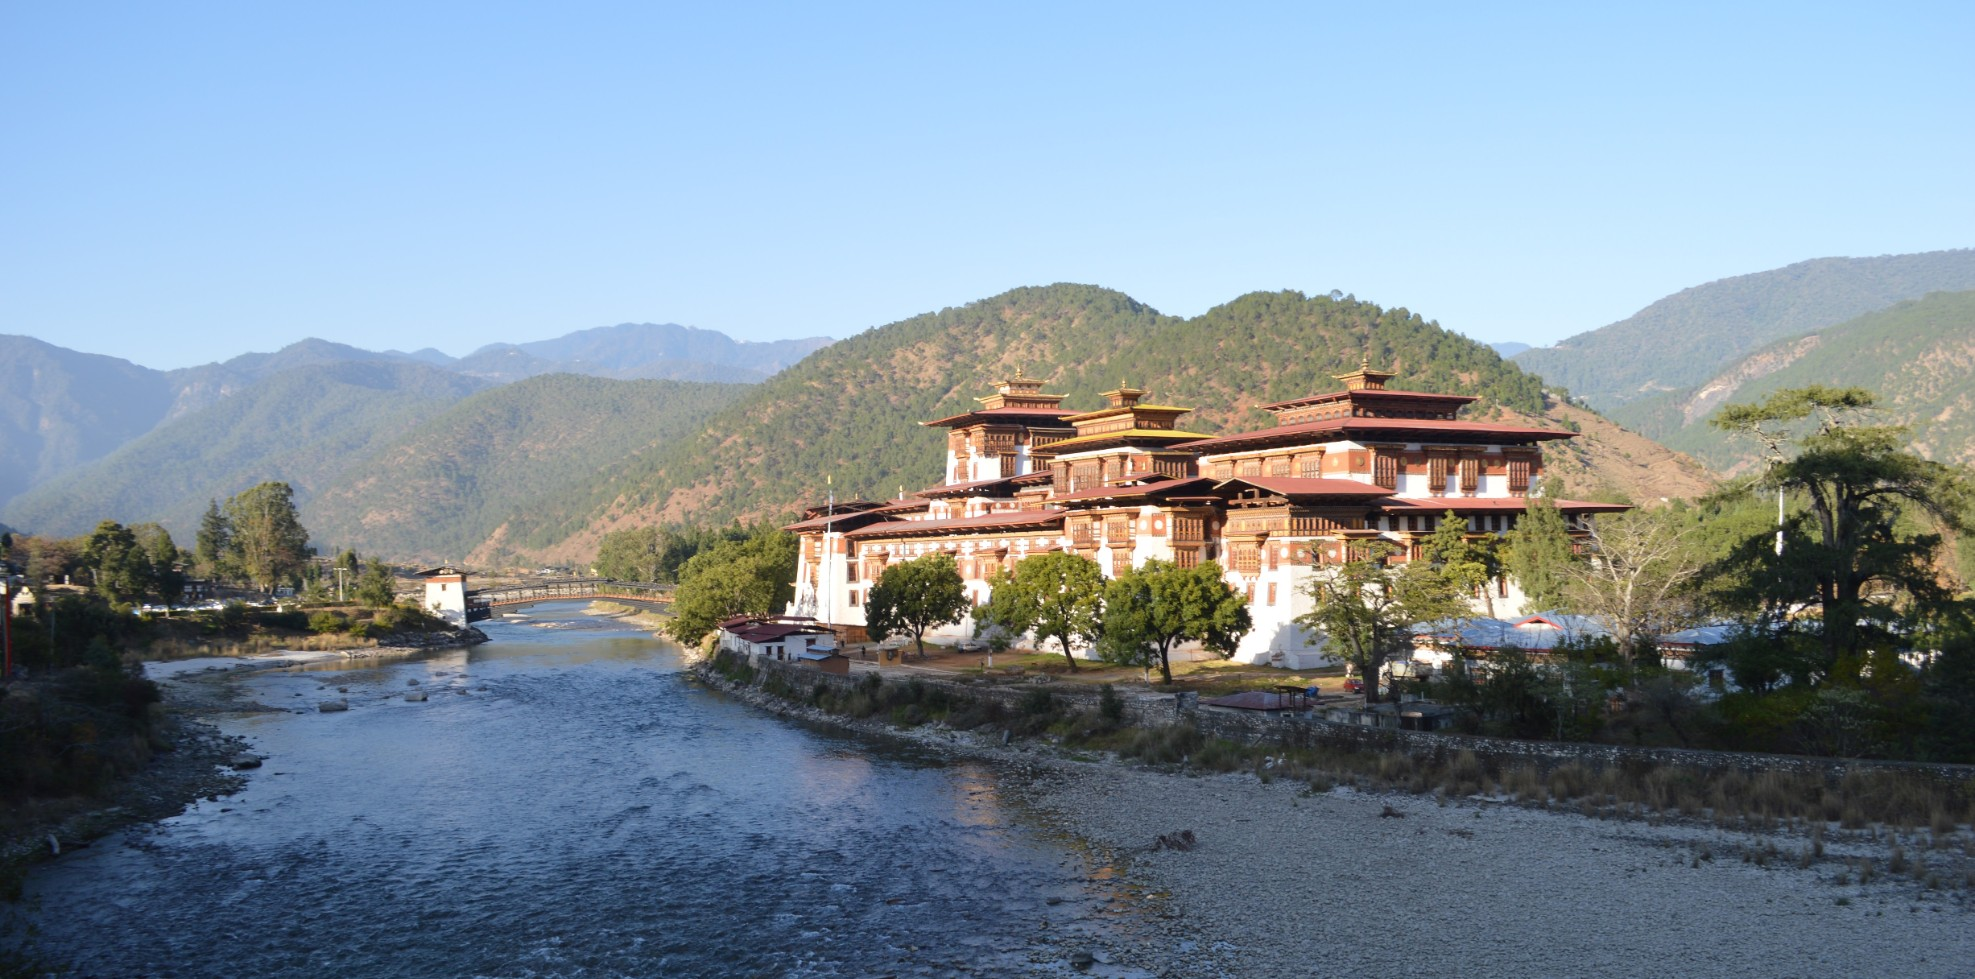 7Nights 8Days Inspiring Bhutan Tour Package